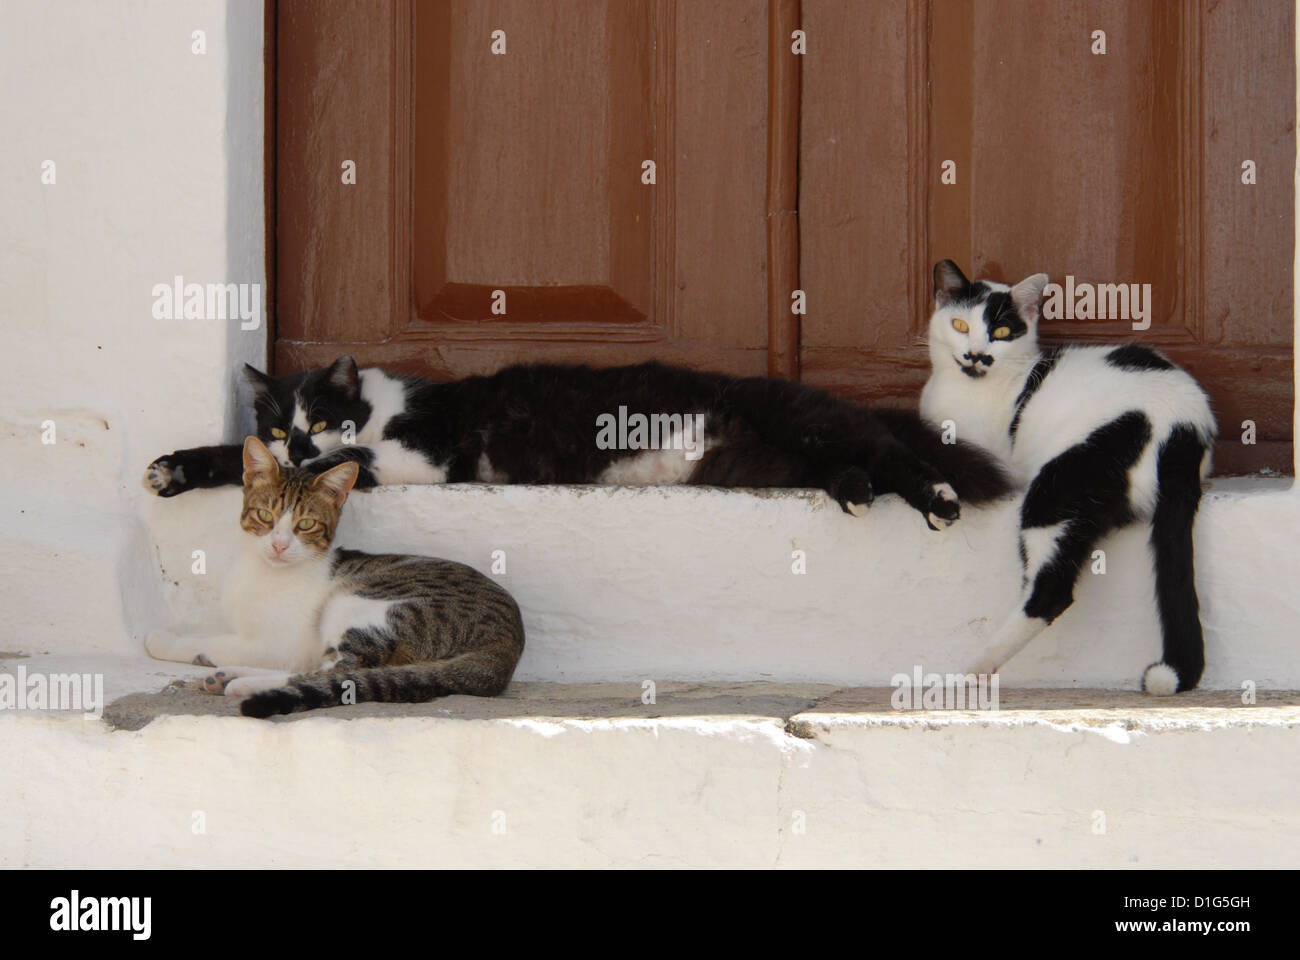 three cats, resting side by side on a threshold, Greece, Dodecanese Island, Non-pedigree Shorthair, felis silvestris - Stock Image